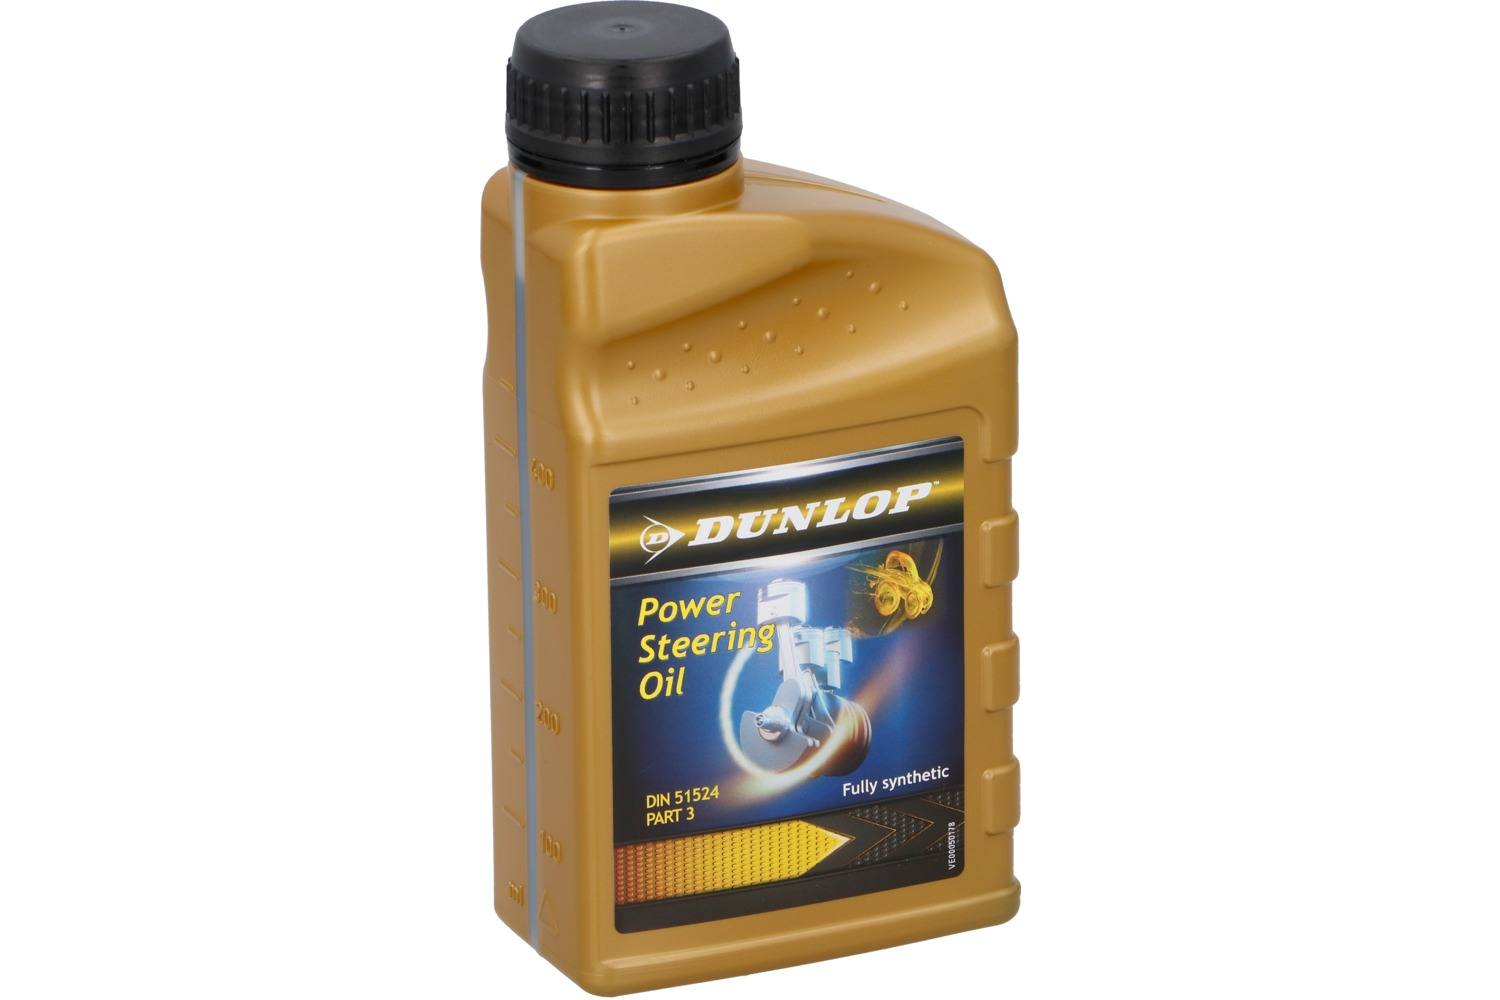 Lubricating oil, Dunlop, 500ml, full syntheticstuurbekrachtigingsolie 1